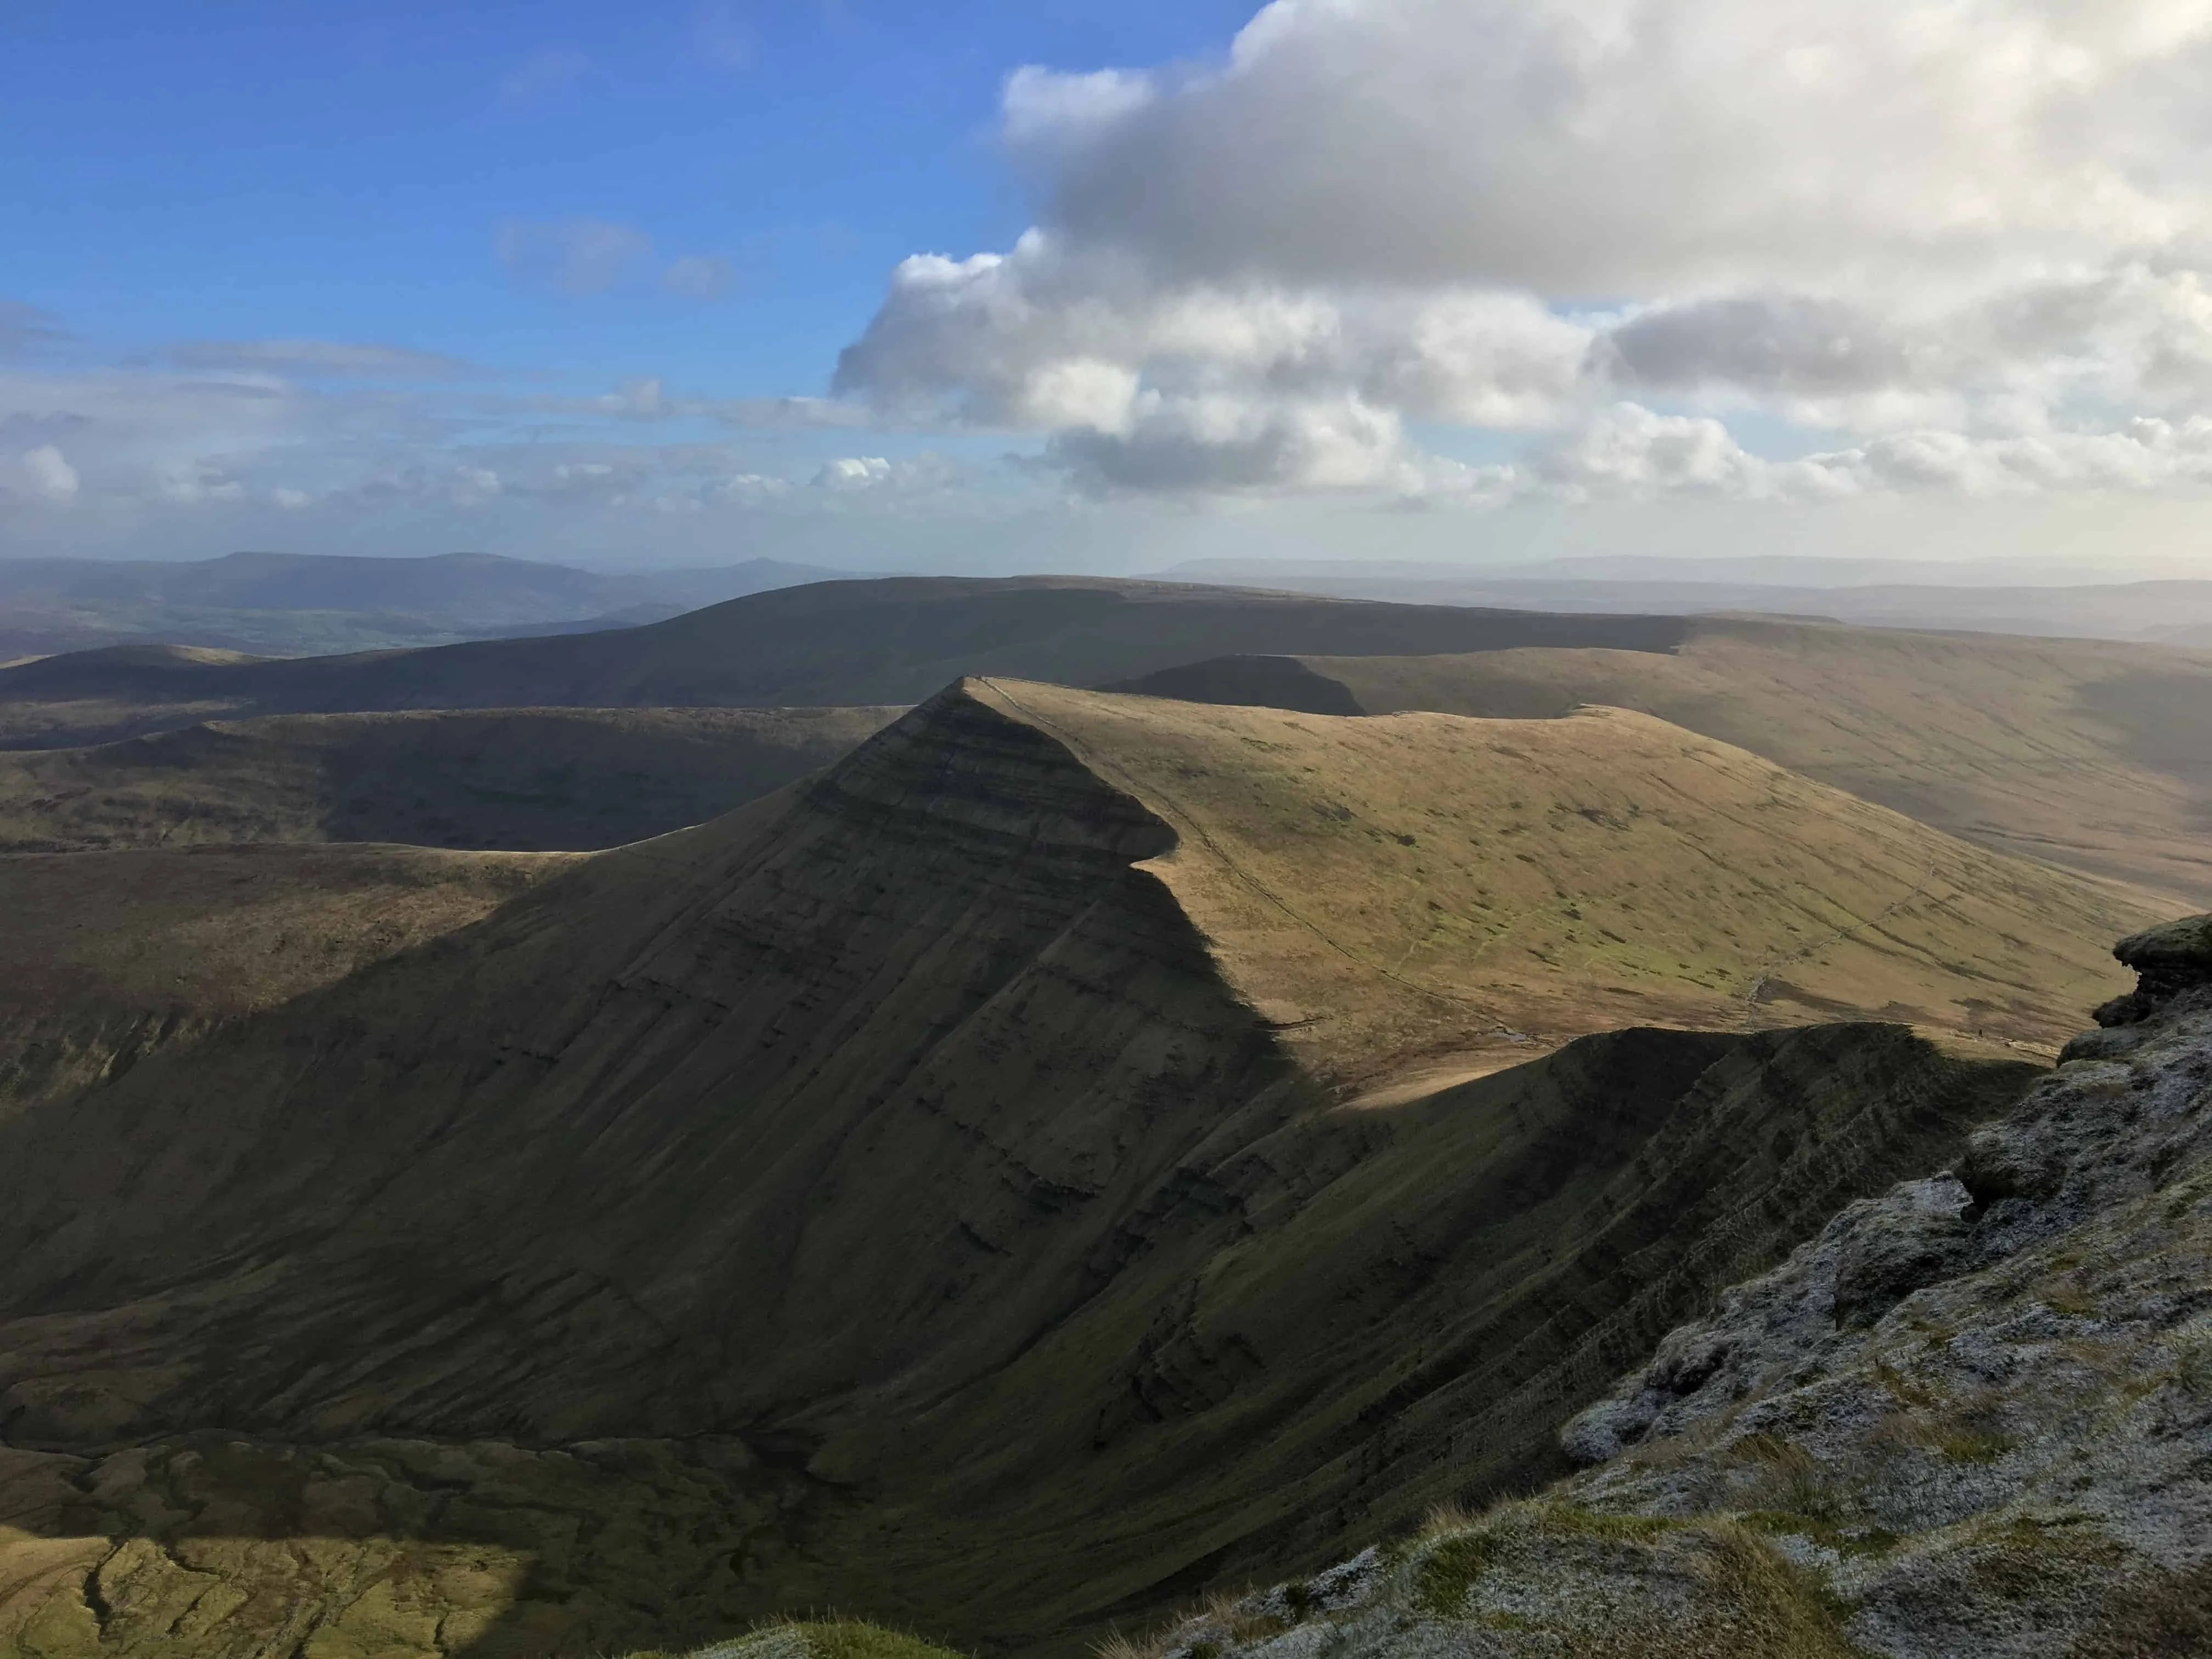 A guide to hiking Pen Y Fan – 3 routes up Southern Britain's highest peak